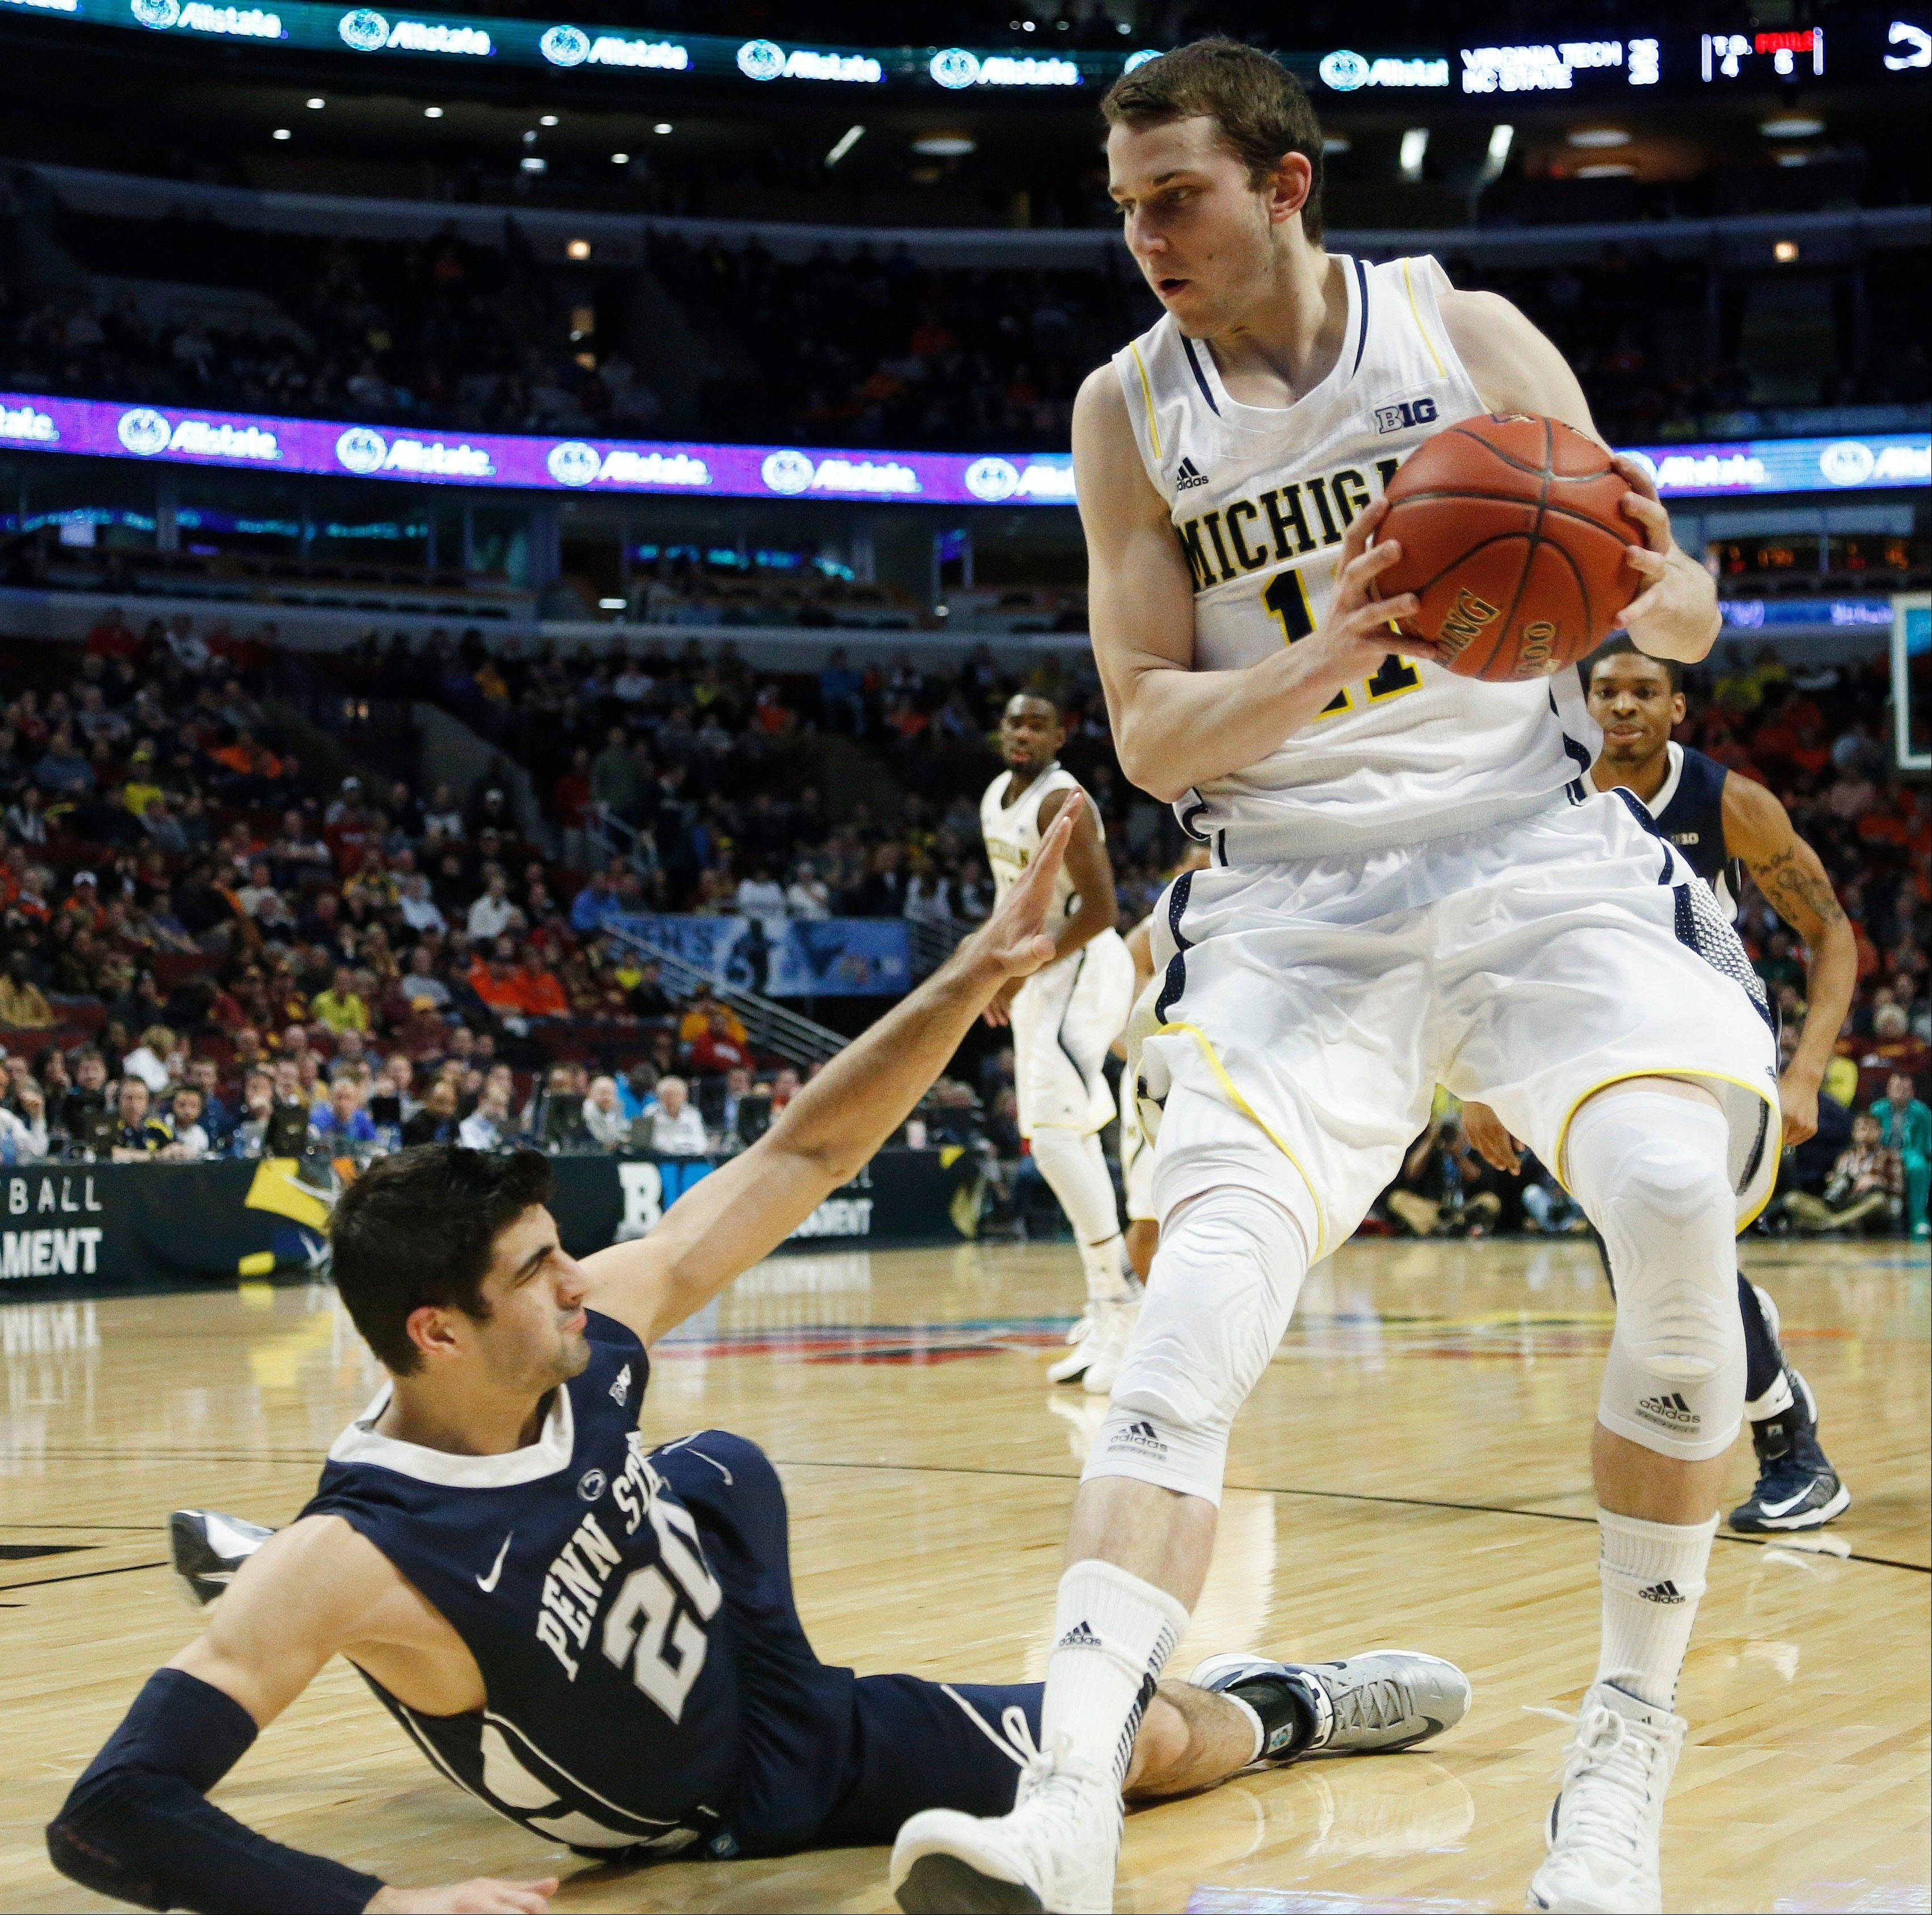 Penn State�s Nick Colella falls as he defends Michigan�s Nik Stauskas Thrusday during the second half of an opening round game at the Big Ten tournament Thursday at the United Center.